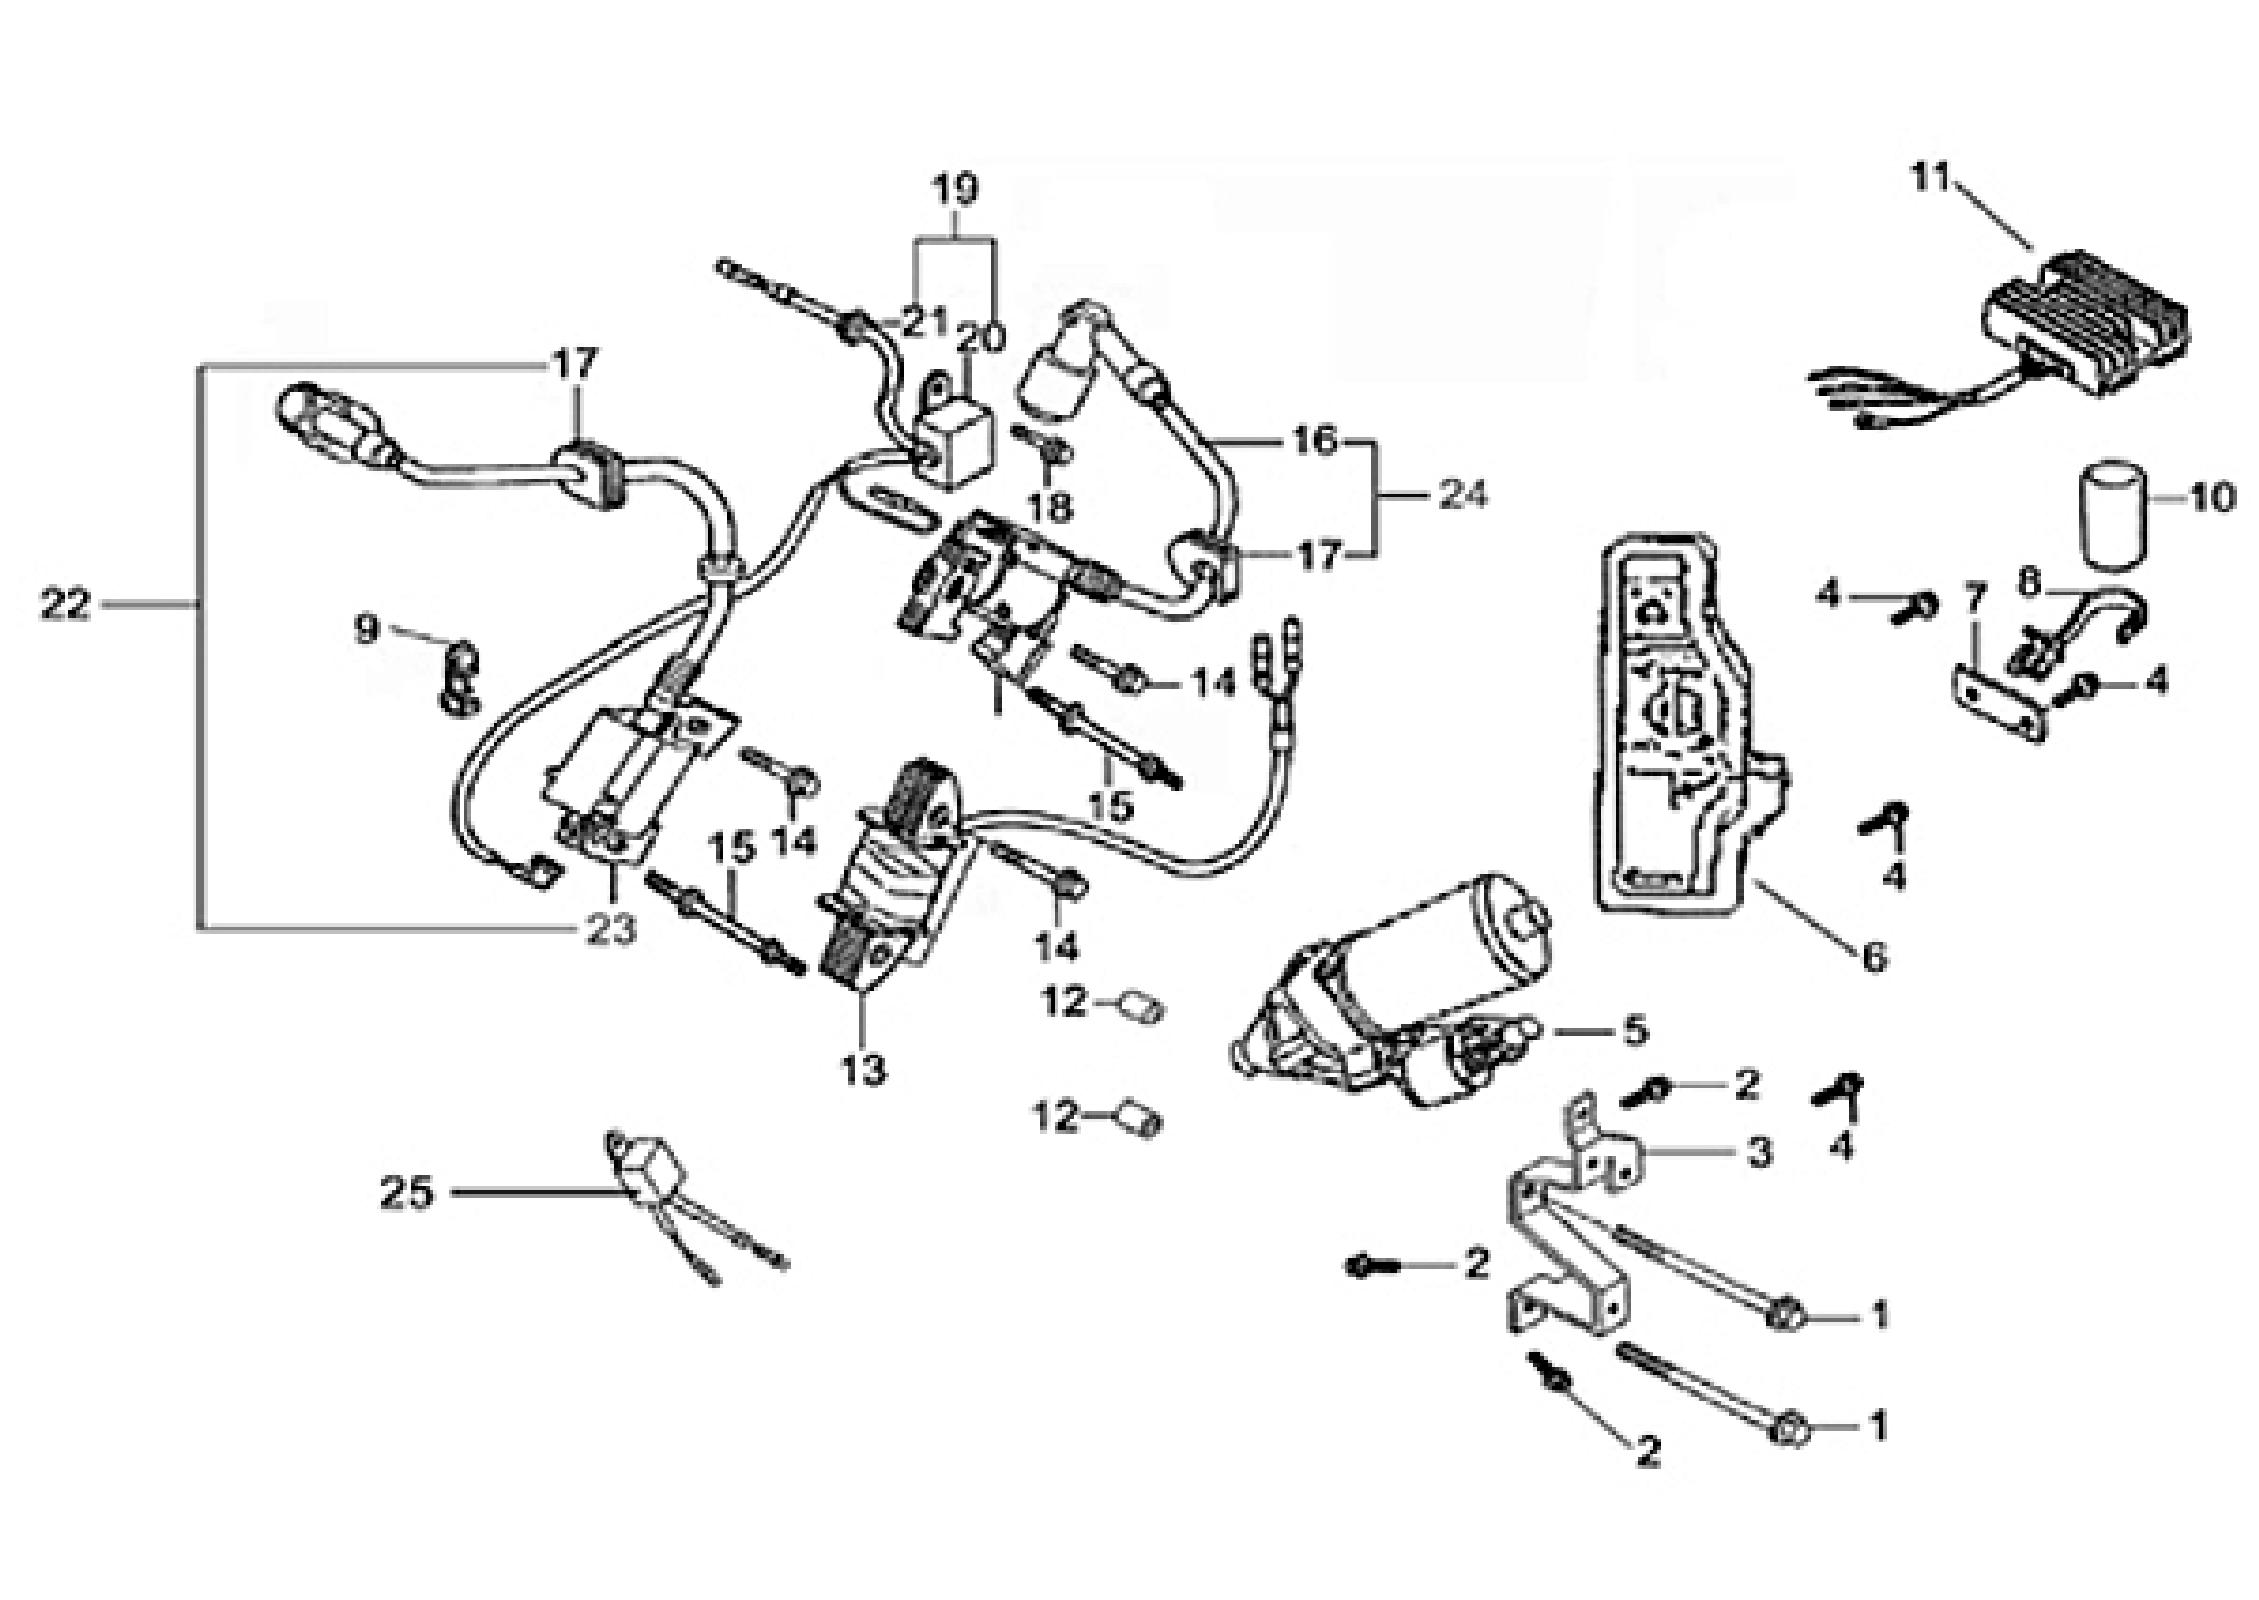 Honda Gx390 Engine Parts Diagram on Honda Gx630 Engine Part Diagrams